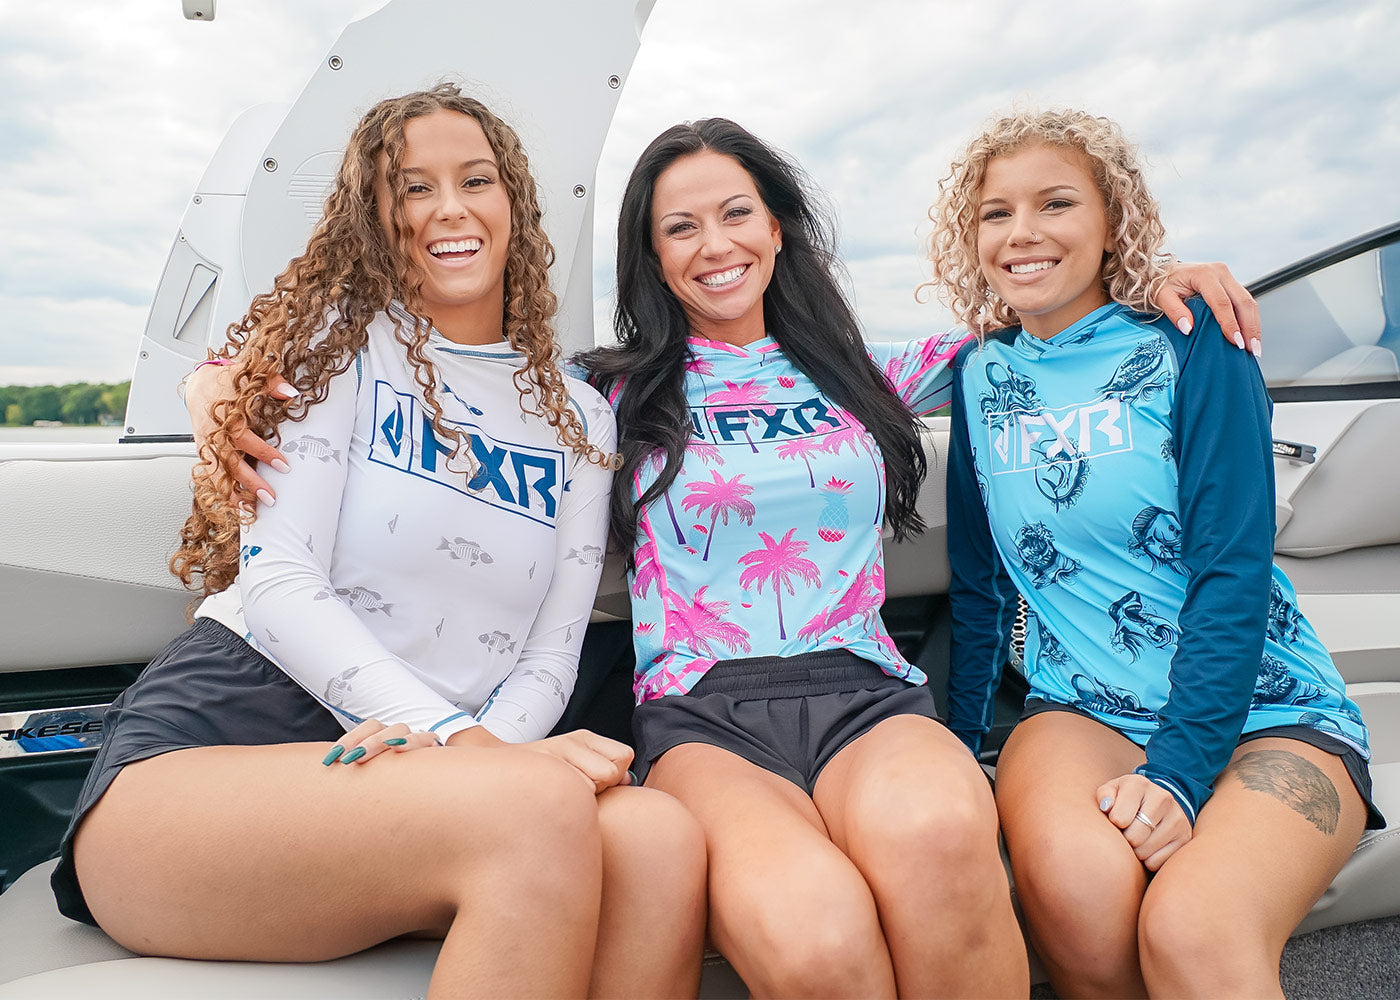 Three women on a boat enjoying the day on a wakeboard boat dressed in FXR's new UPF 50+ performance pullover pieces.